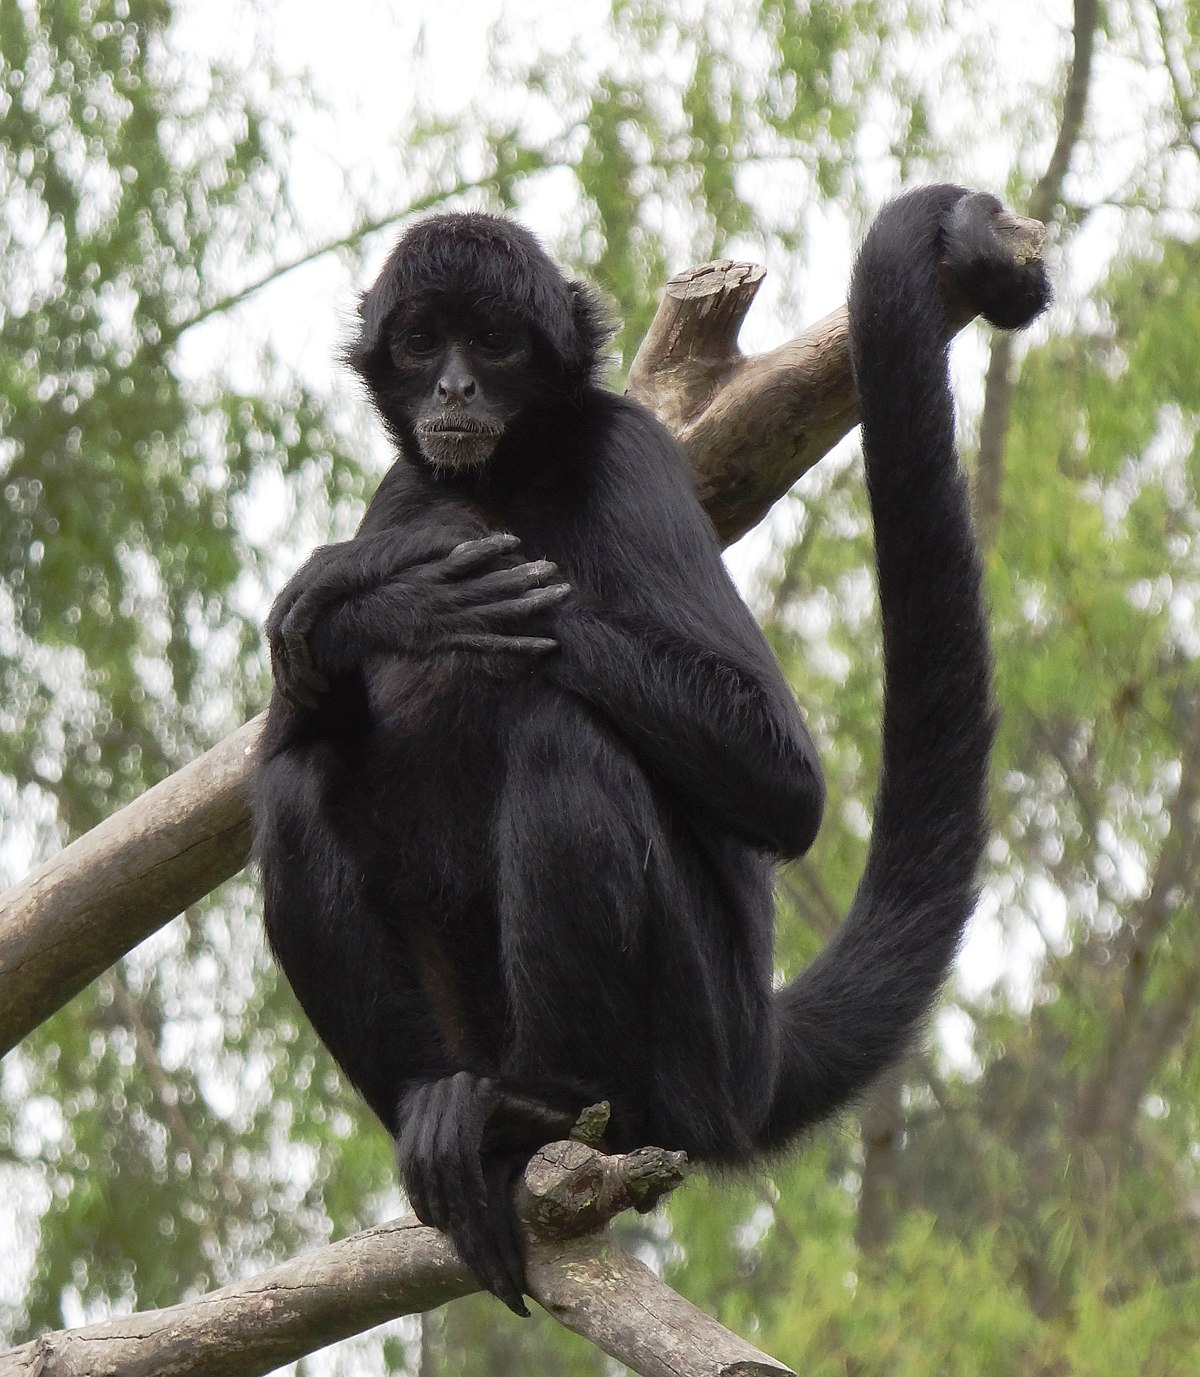 Spider monkey - Wikipedia